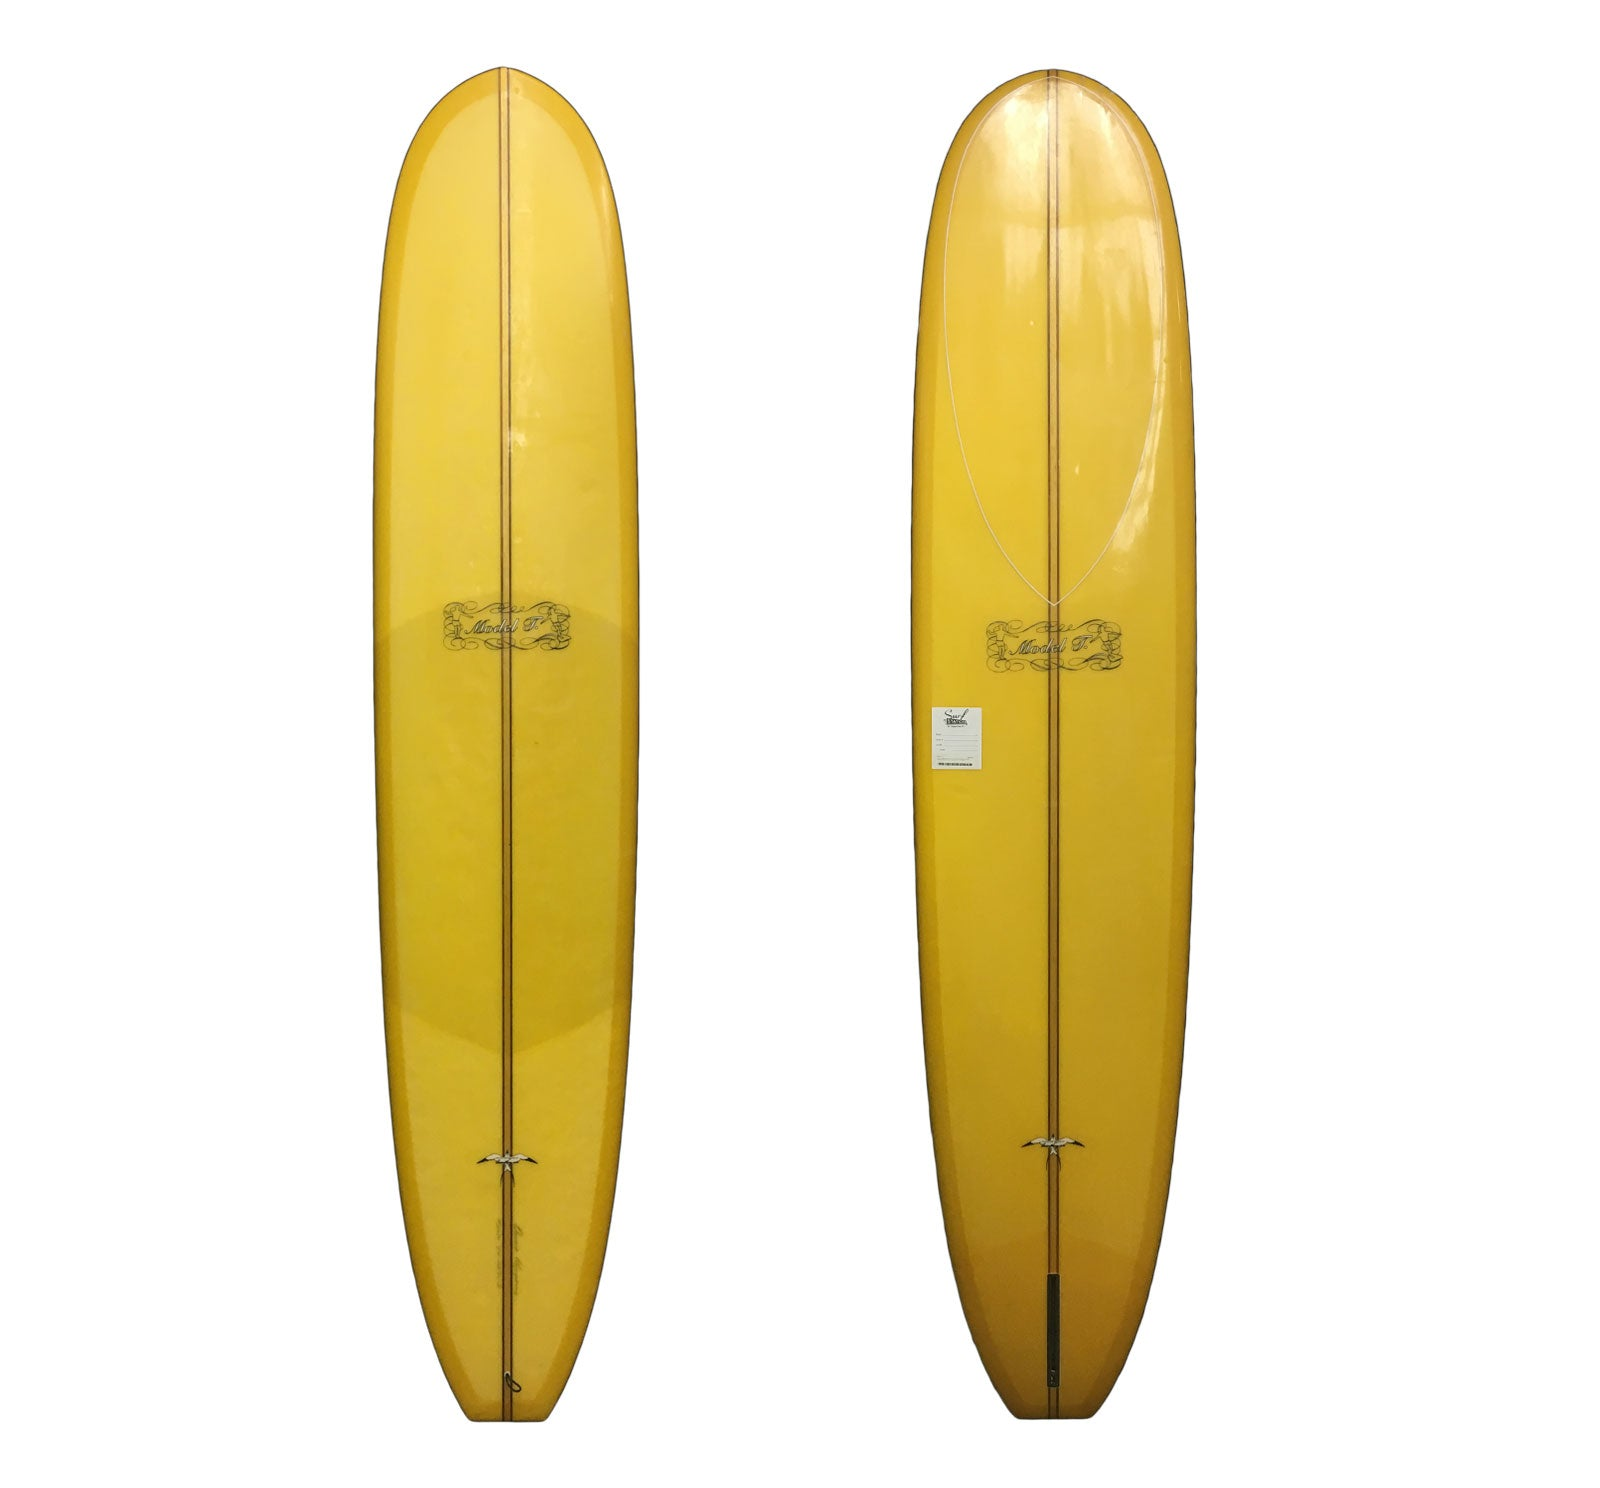 Donald Takayama Model T 9'4 Collector Surfboard